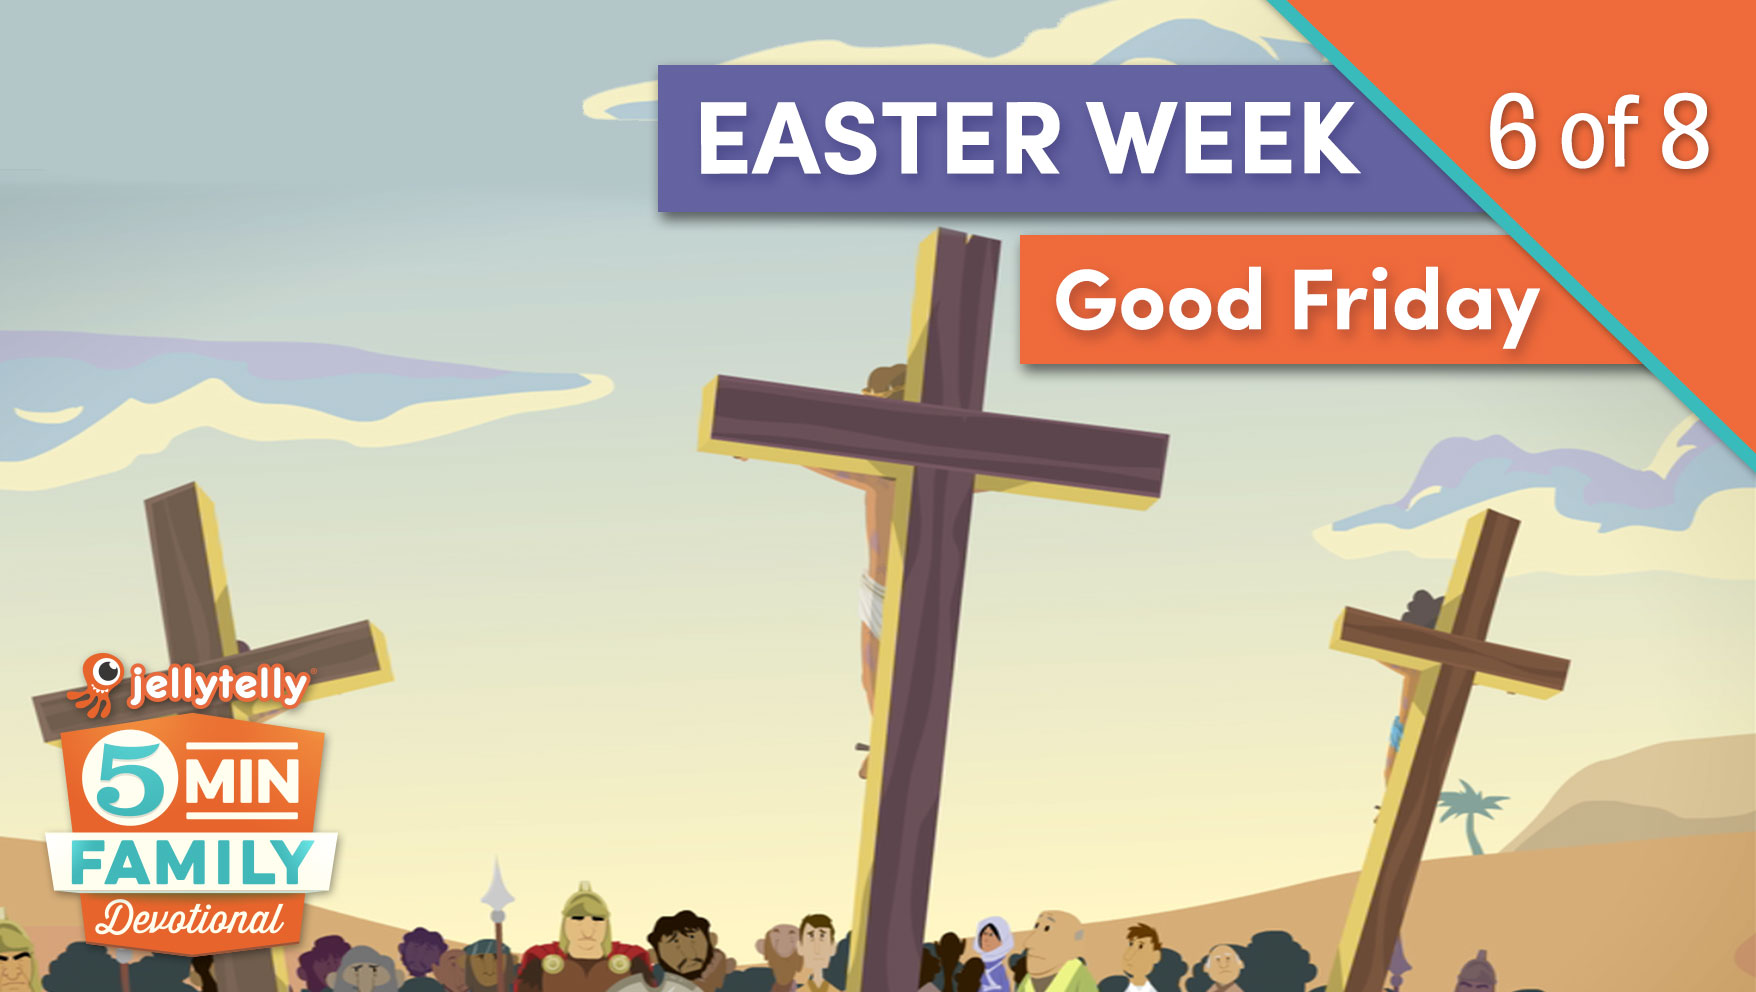 Good Friday - Easter Week 5 Minute Family Devotional